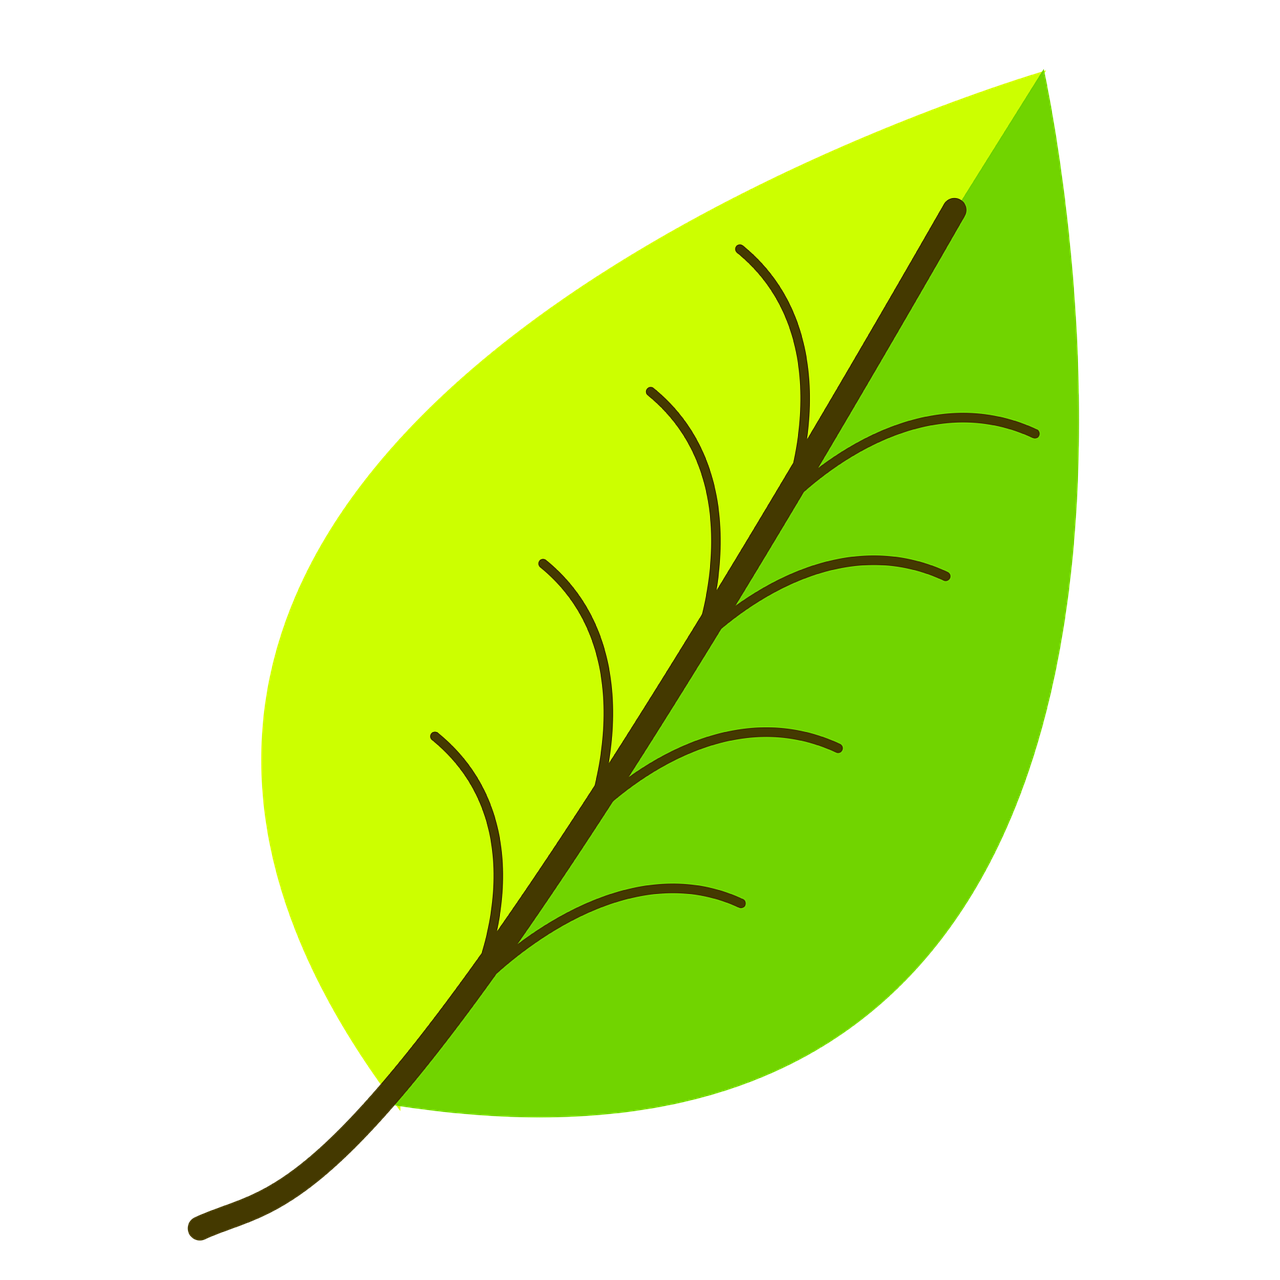 How To Draw A Leaf 19 Ideas Beautiful Drawings Of Leaves